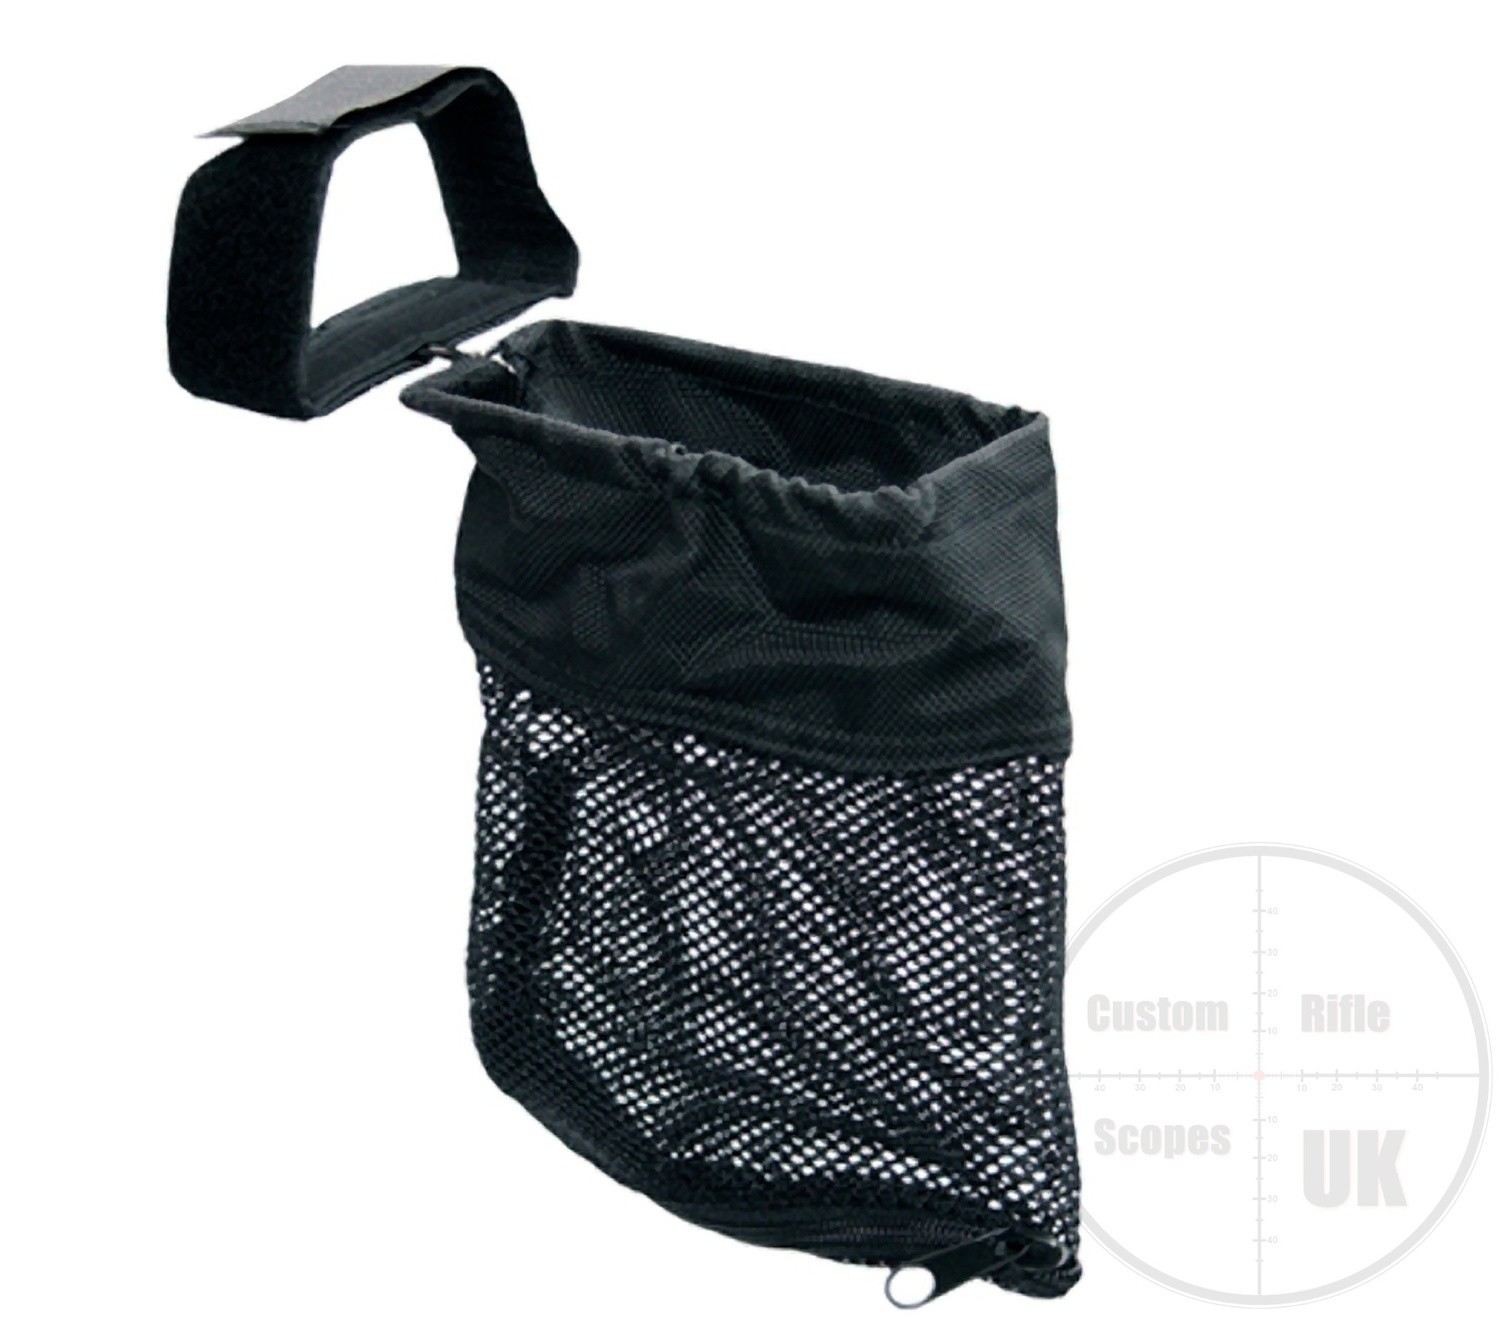 UTG Mesh Trap Shell Catcher - Zippered for Quick Unload